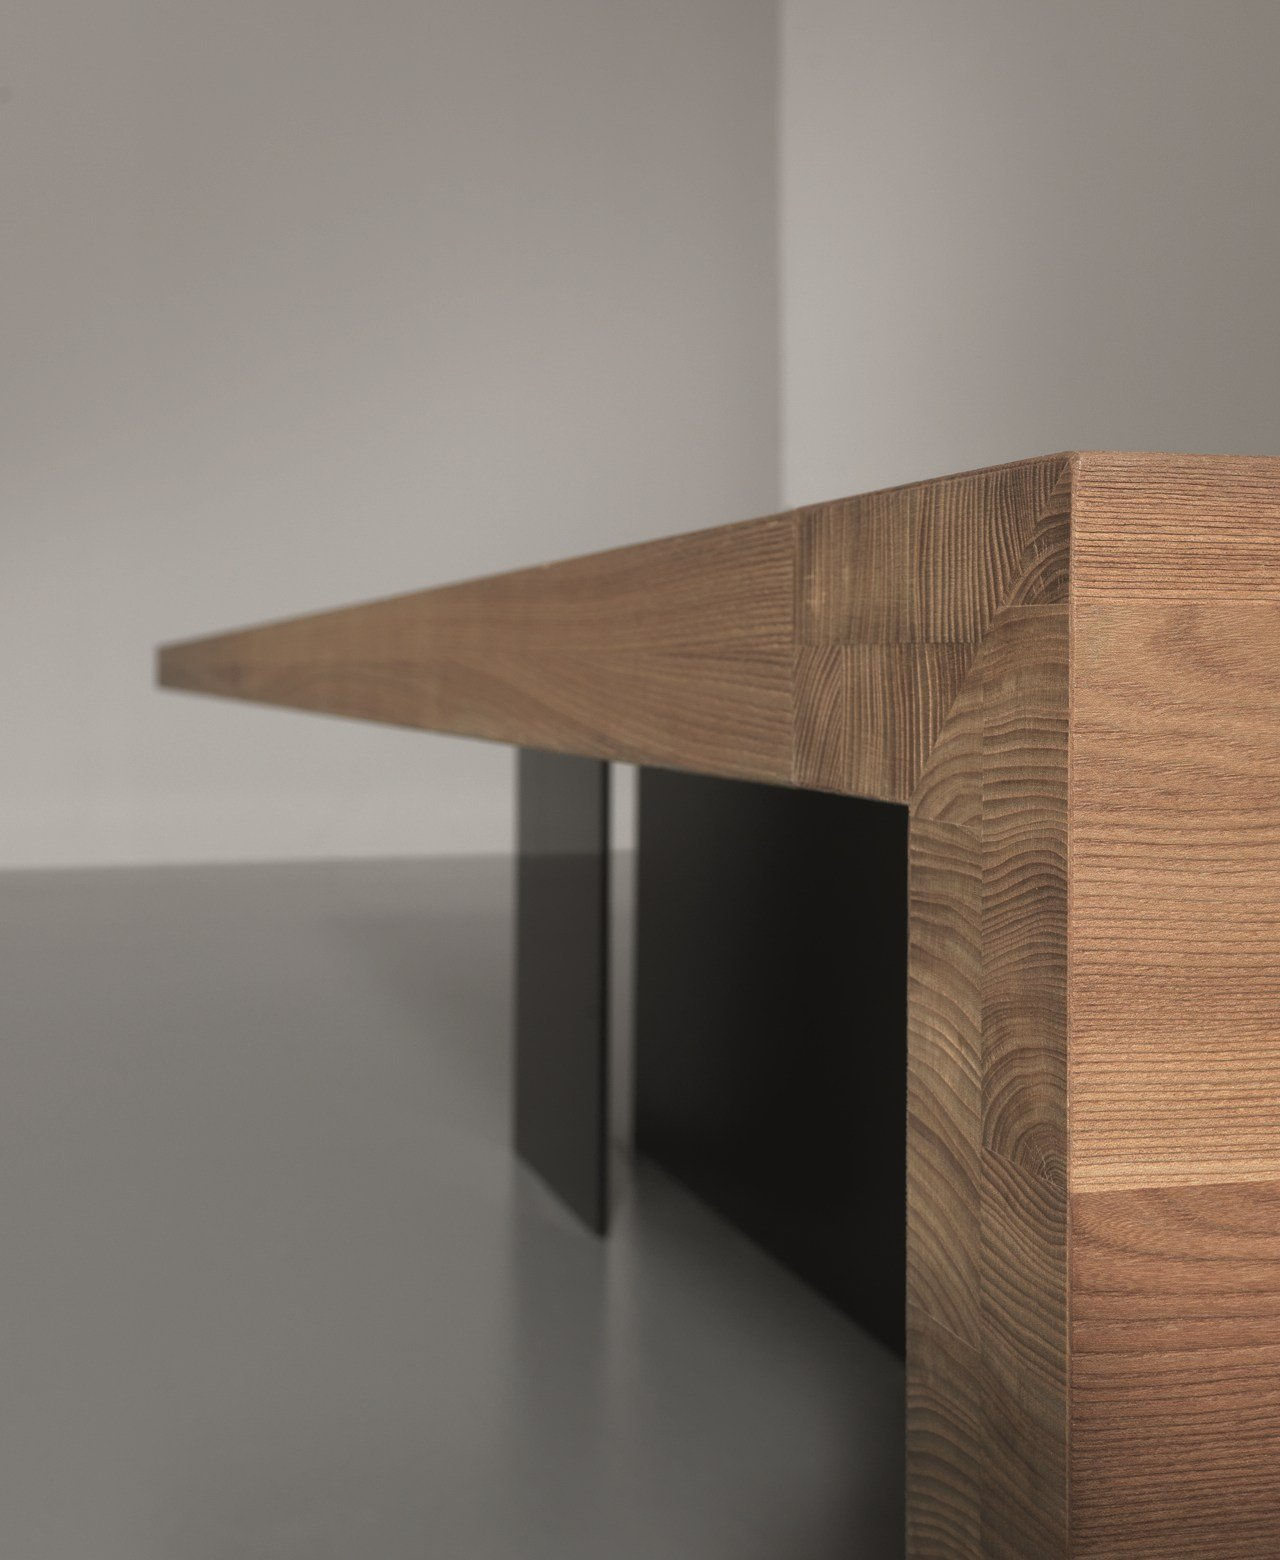 Bureau de direction en bois massif kyo olmo collection kyo by martex design - Bureau d angle bois massif ...